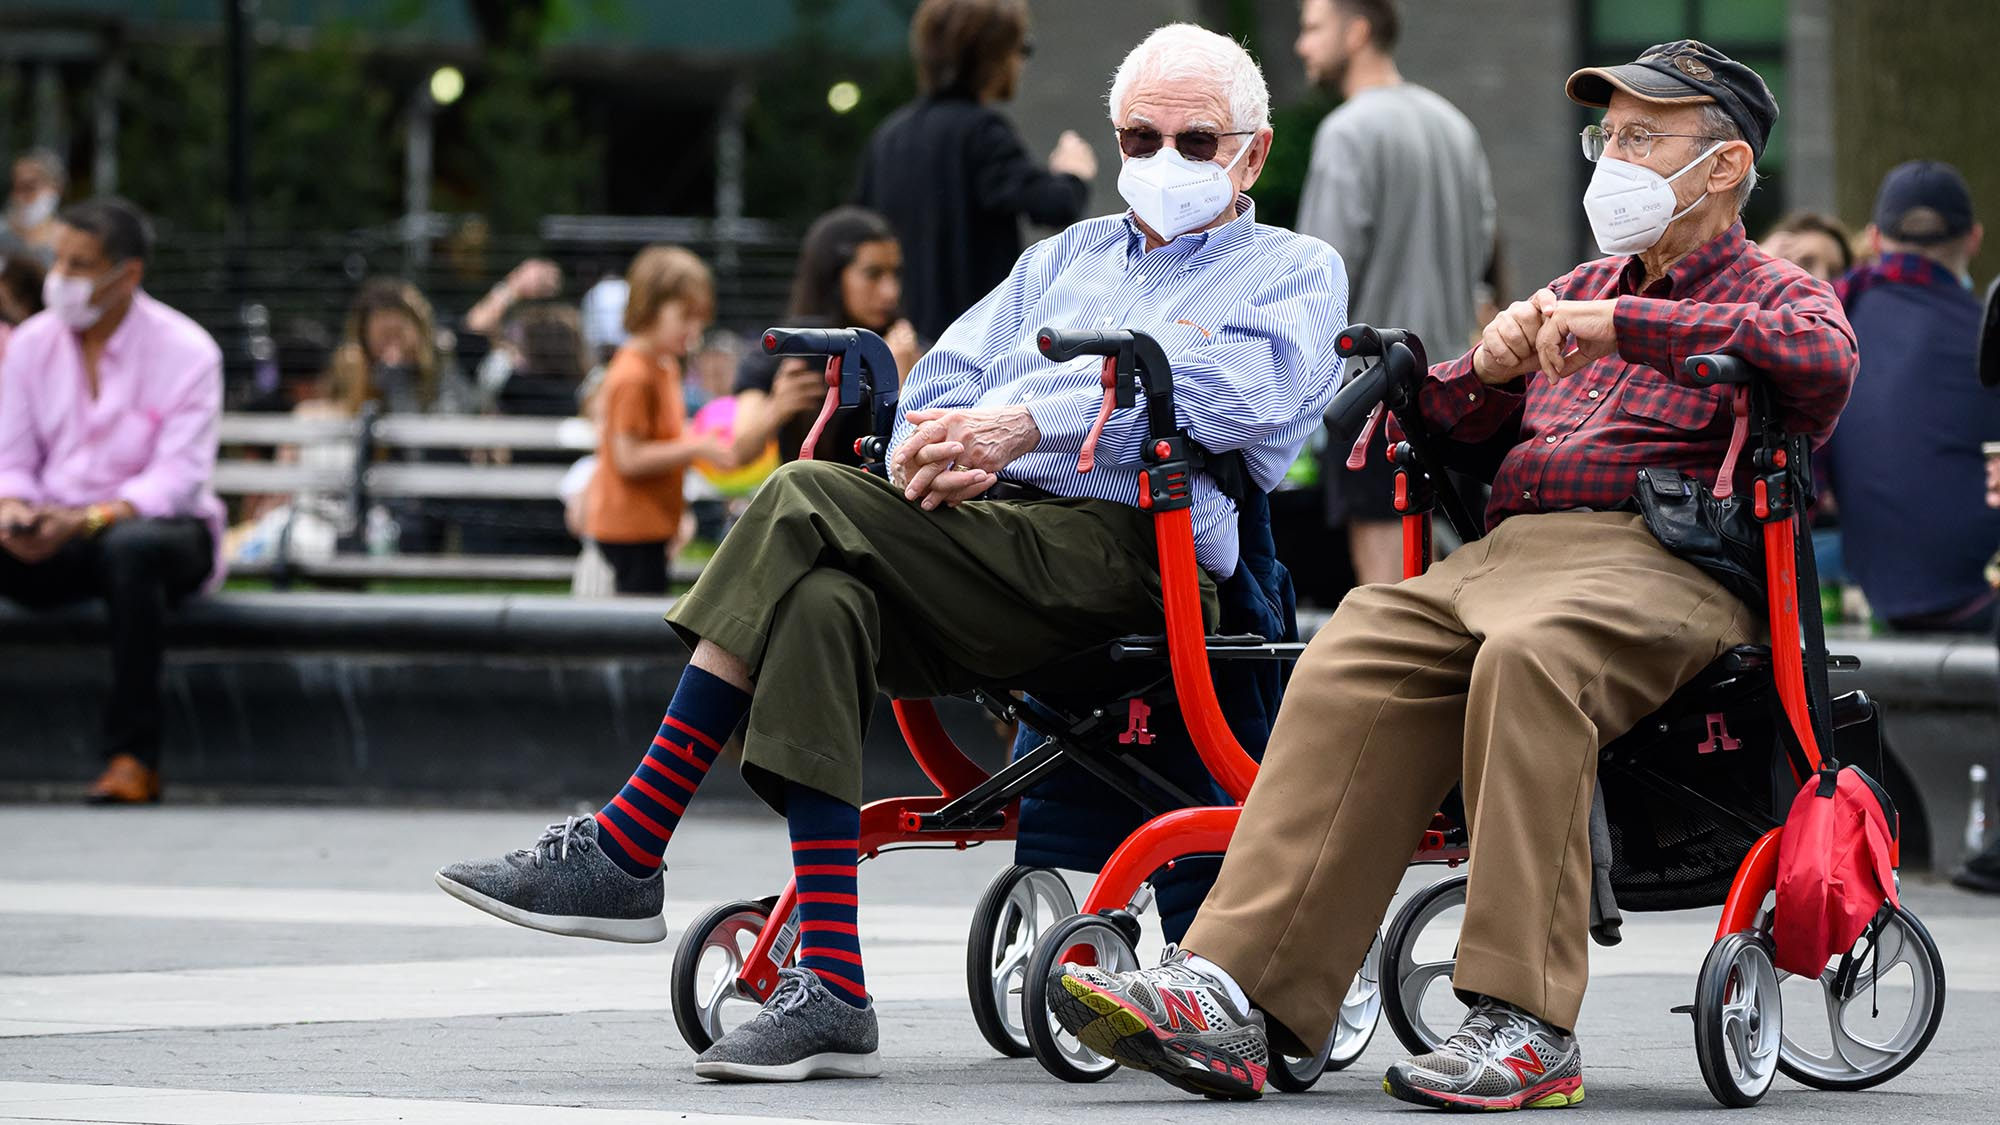 Seniors are better at pandemic safety than young adults, CDC finds